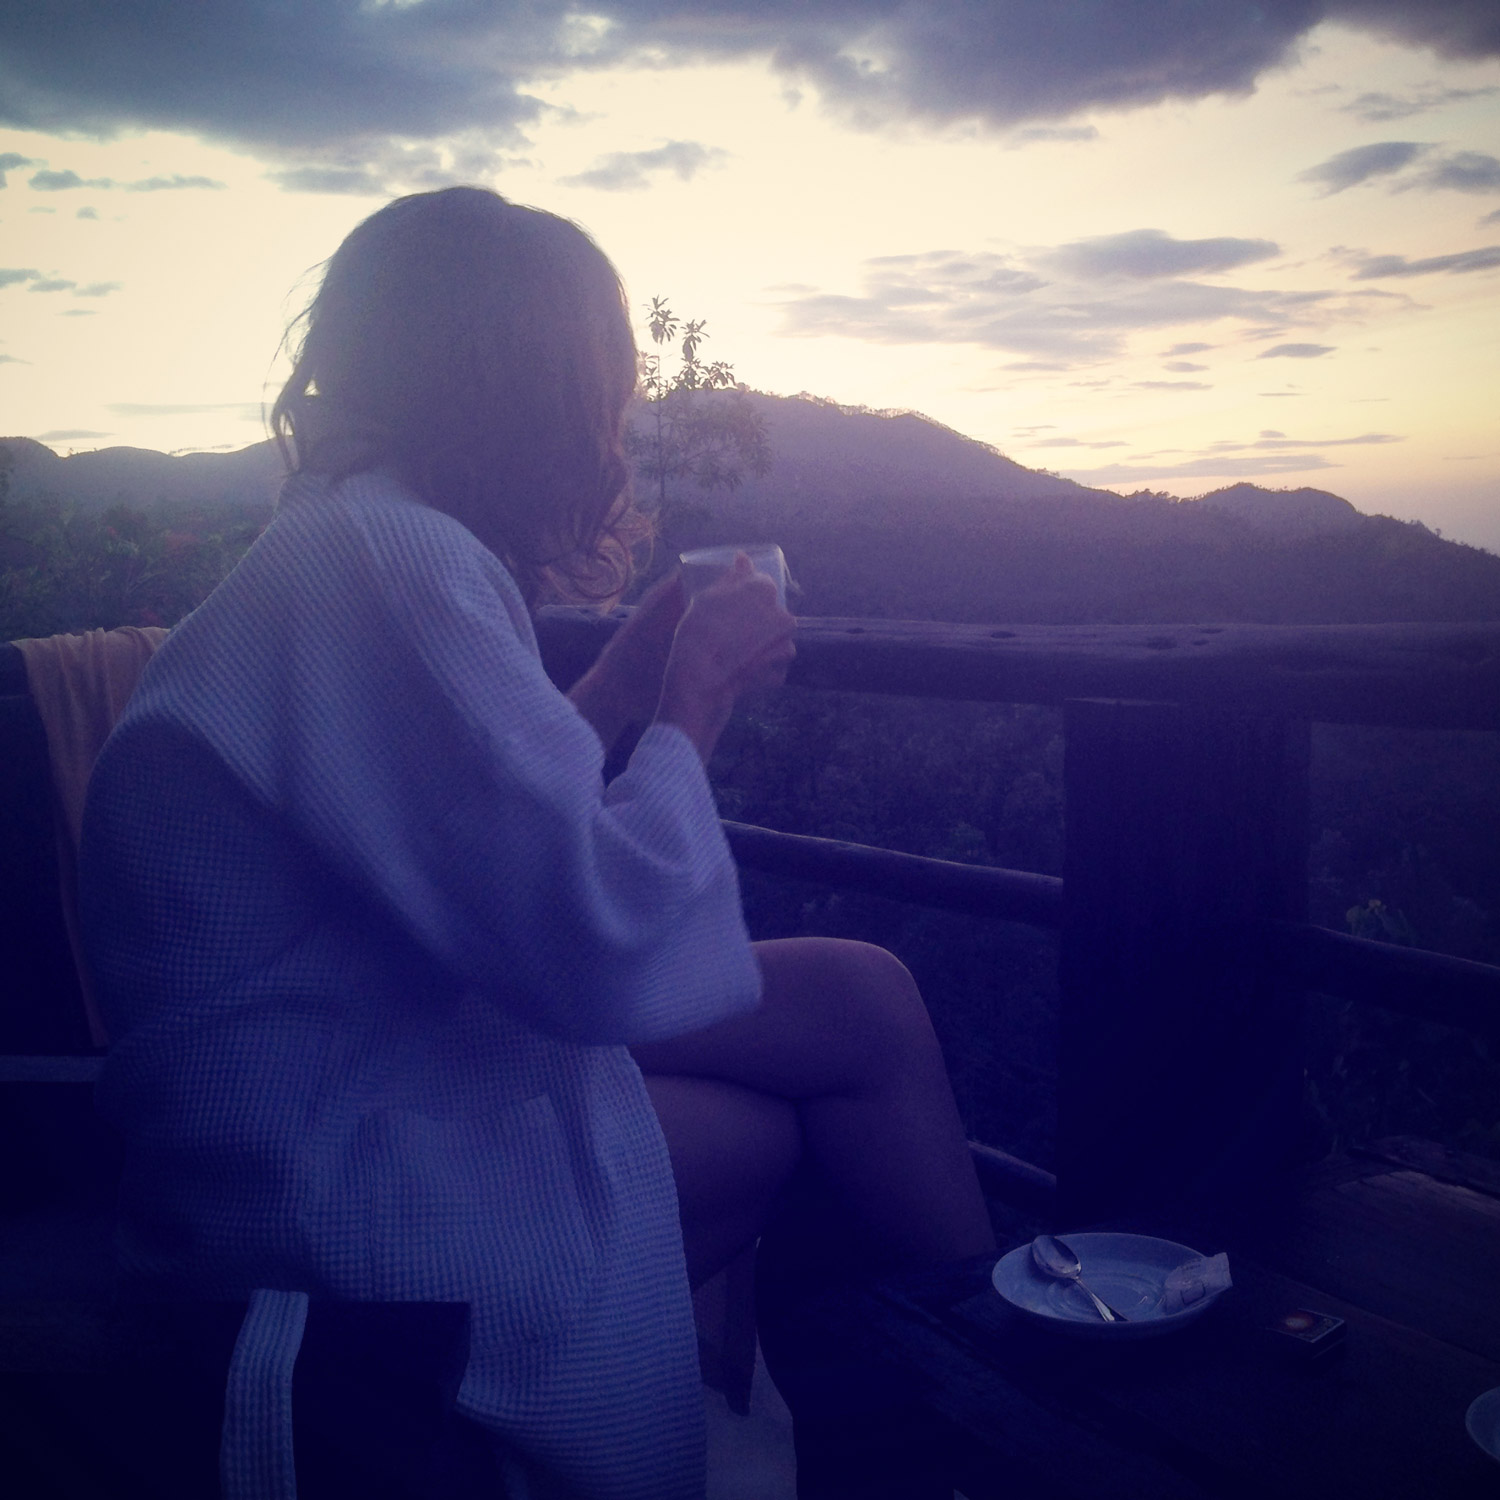 Sunrise cup of tea at 98 acres